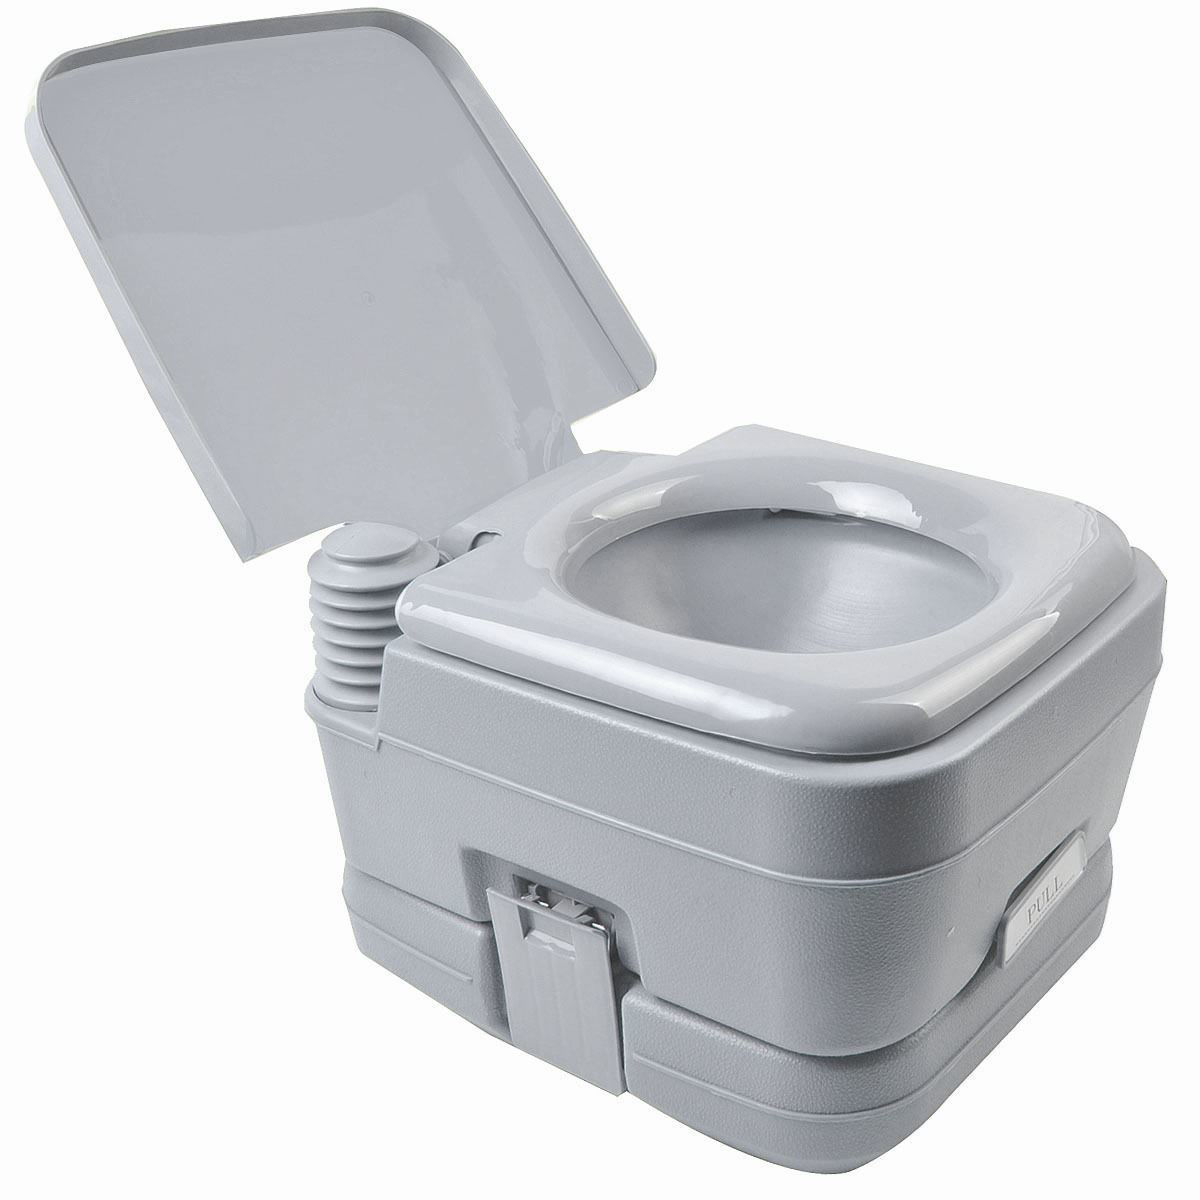 Picture of Outdoor/Indoor Portable Camping Toilet 2.8 Gallon 10L